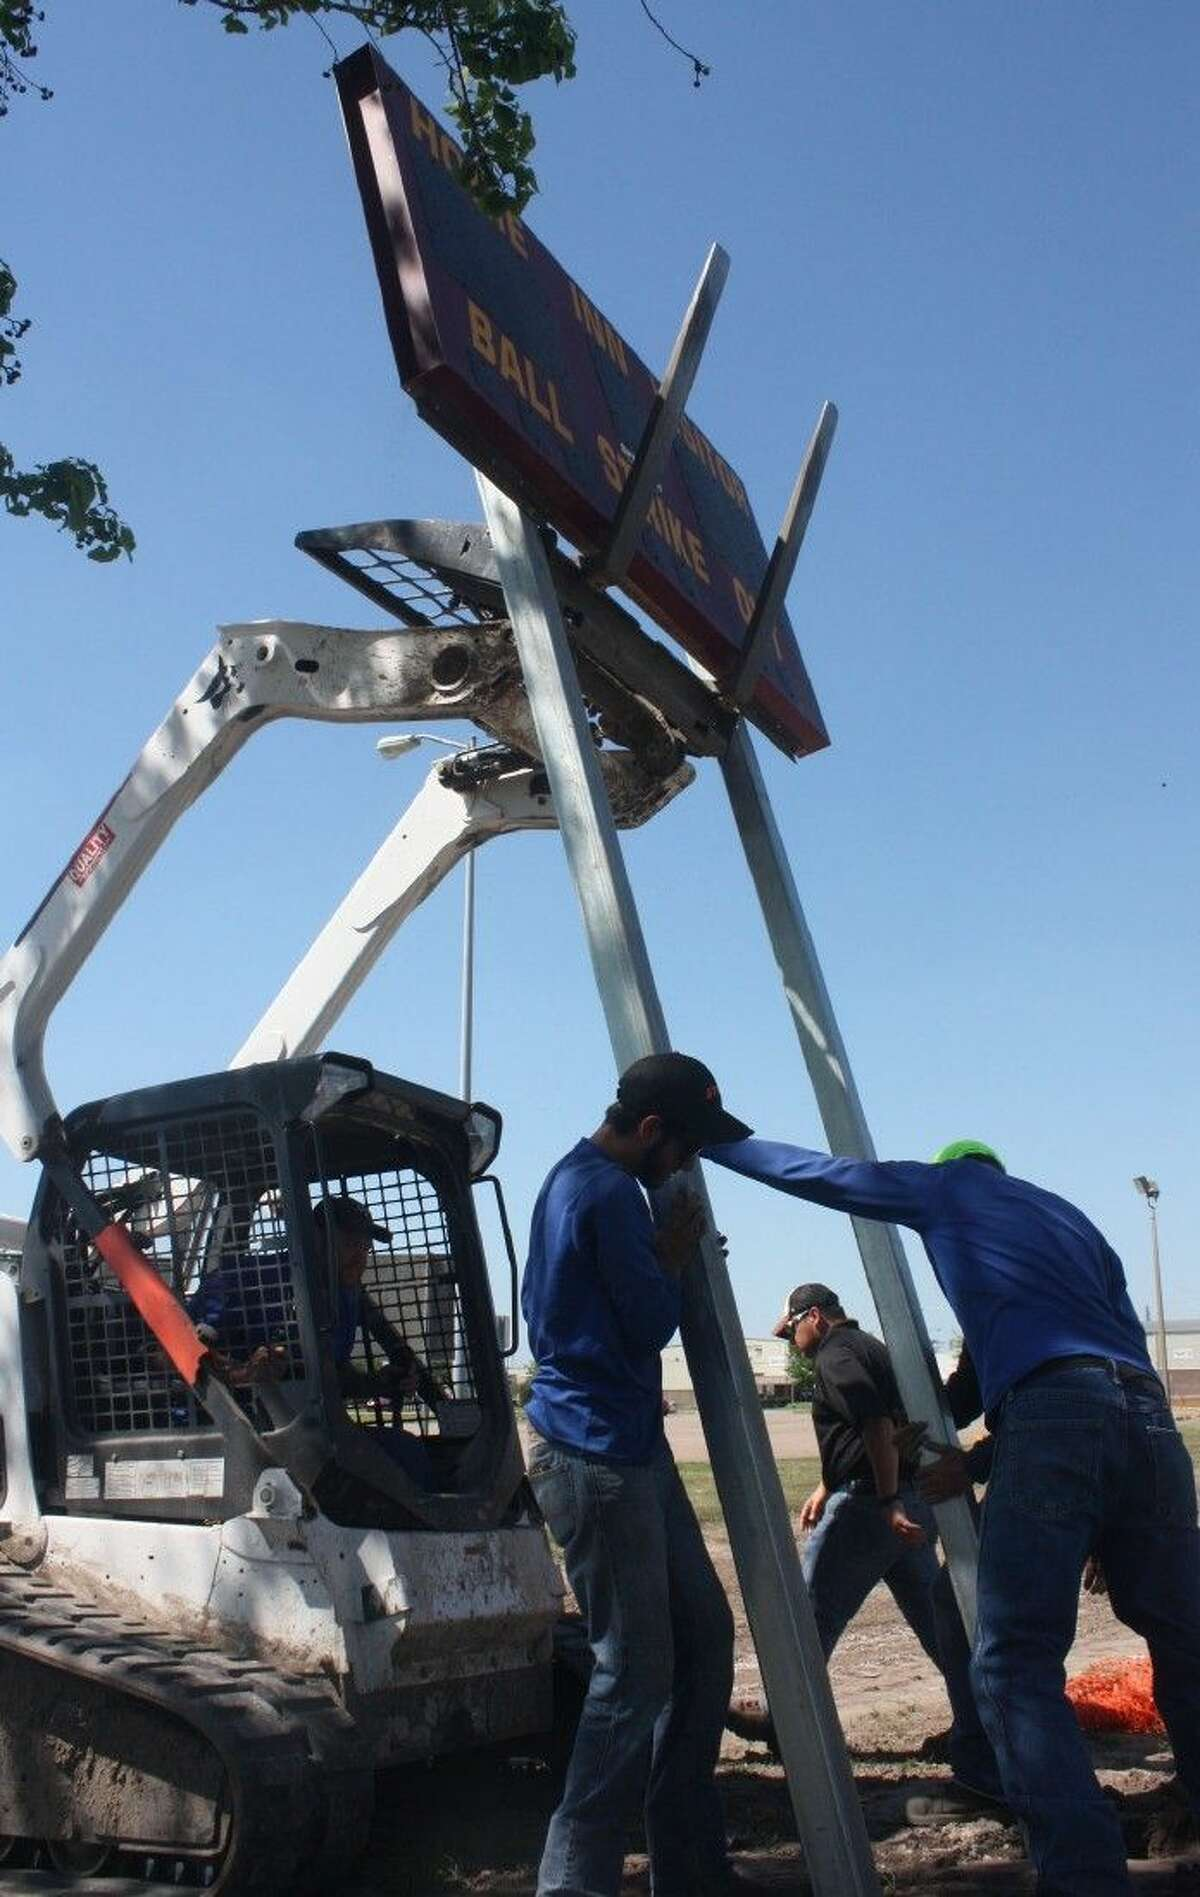 Construction on the city's new youth baseball complex was taking place right down to the last minute as workers install a scoreboard at Field 4 Monday afternoon.